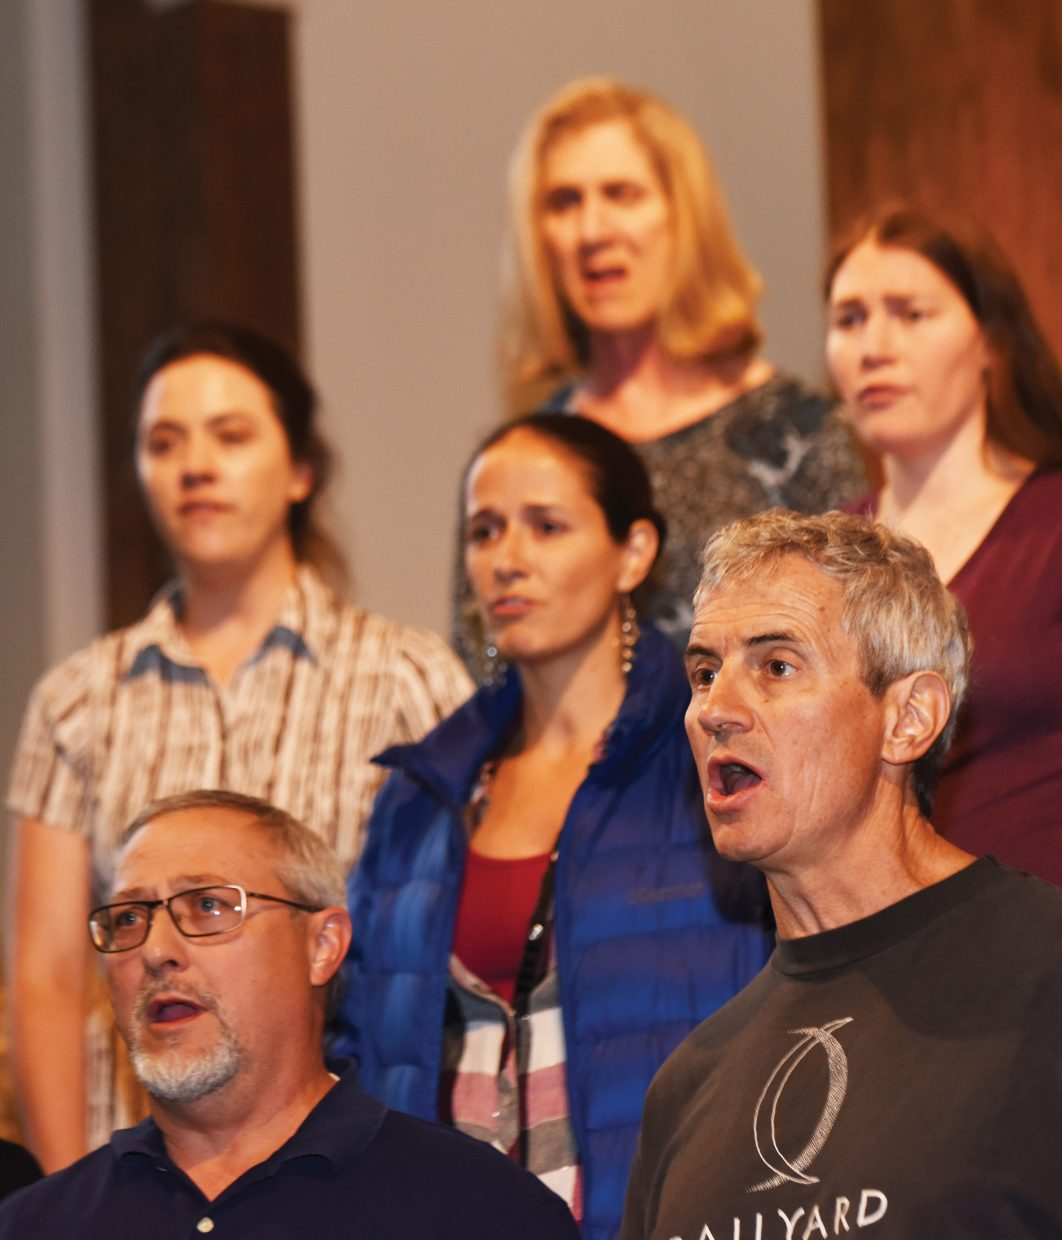 """Steamboat Chamber Singers David Tyree (right) and Russ Fasolino (left) rehearse with the group earlier this week. The Steamboat Chamber Singers' """"Ireland's Call"""" concert, set for Friday and Saturday at St. Paul's Episcopal Church, will feature several guest performers."""